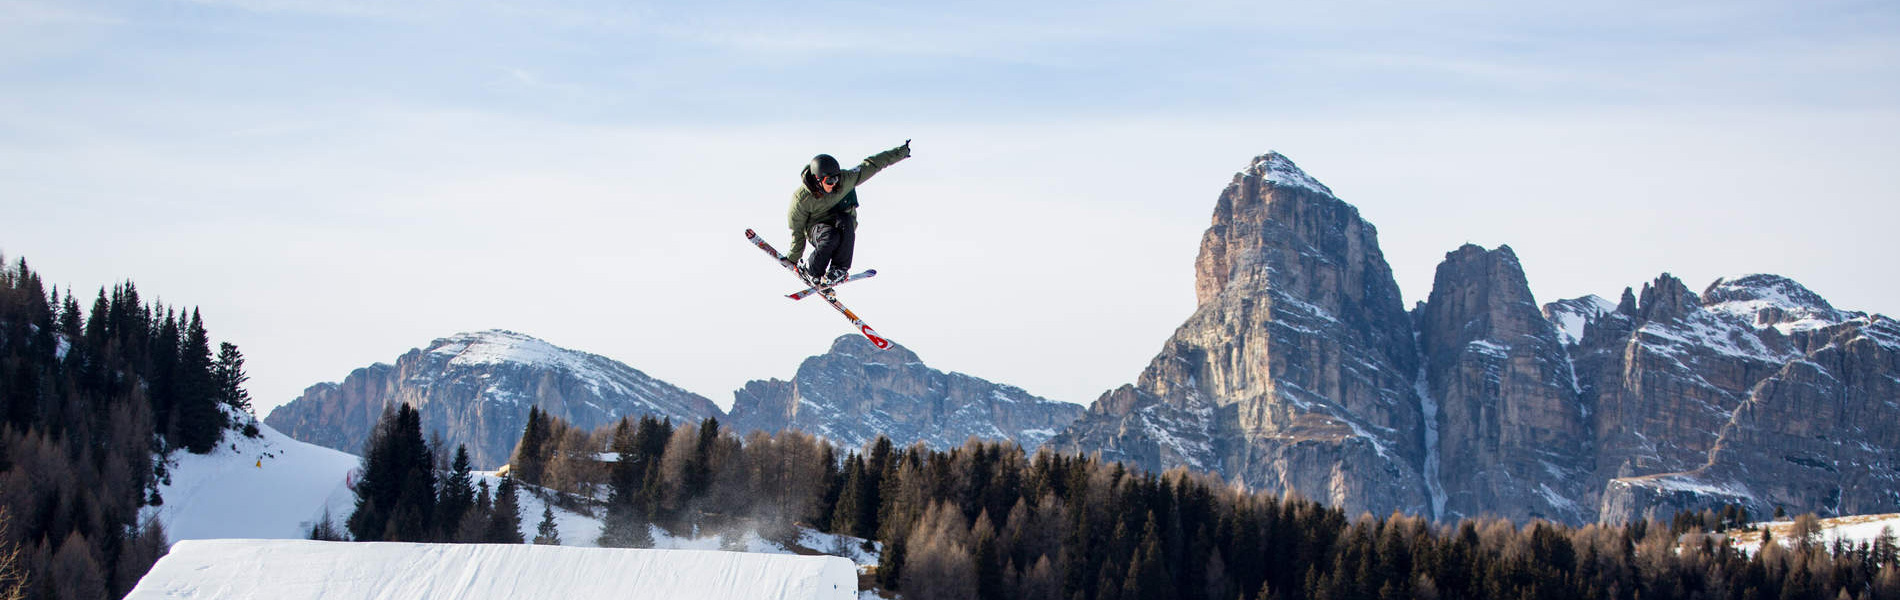 Snowpark Alta Badia – Let´s shred the Dolomites!